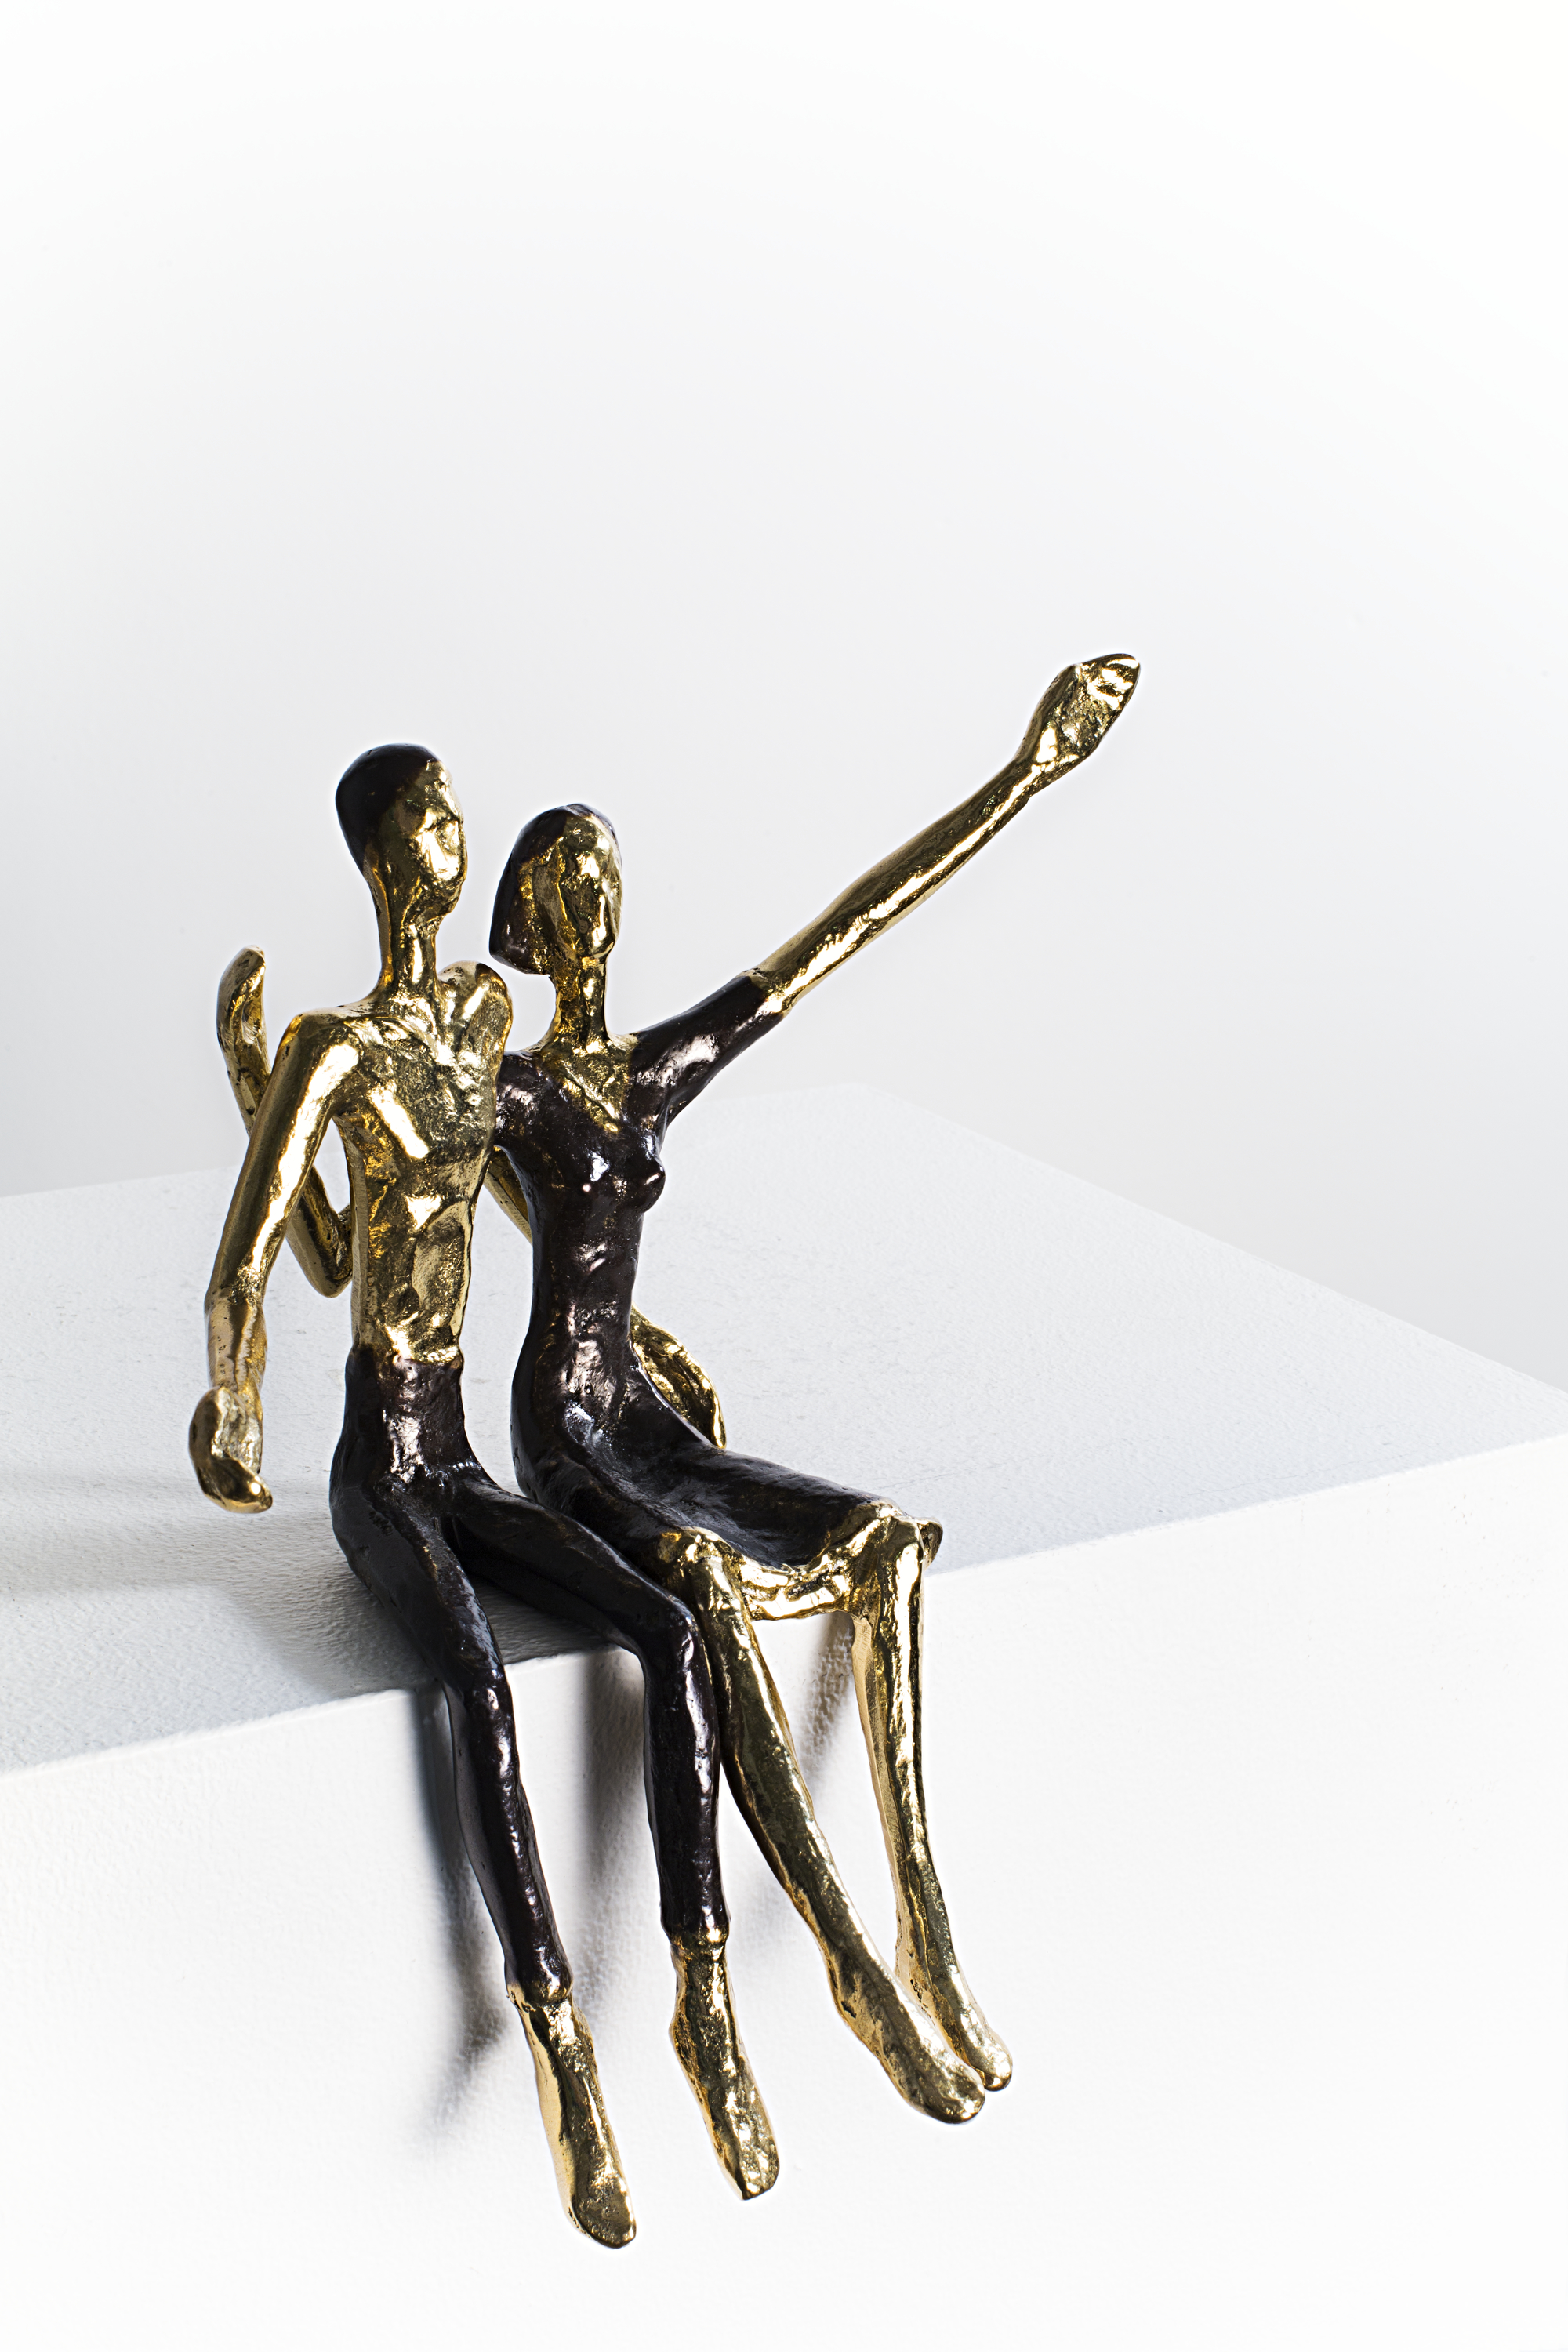 Happiness  Bronze Ed. /250 Lost wax 19 x 19 x 18 cm